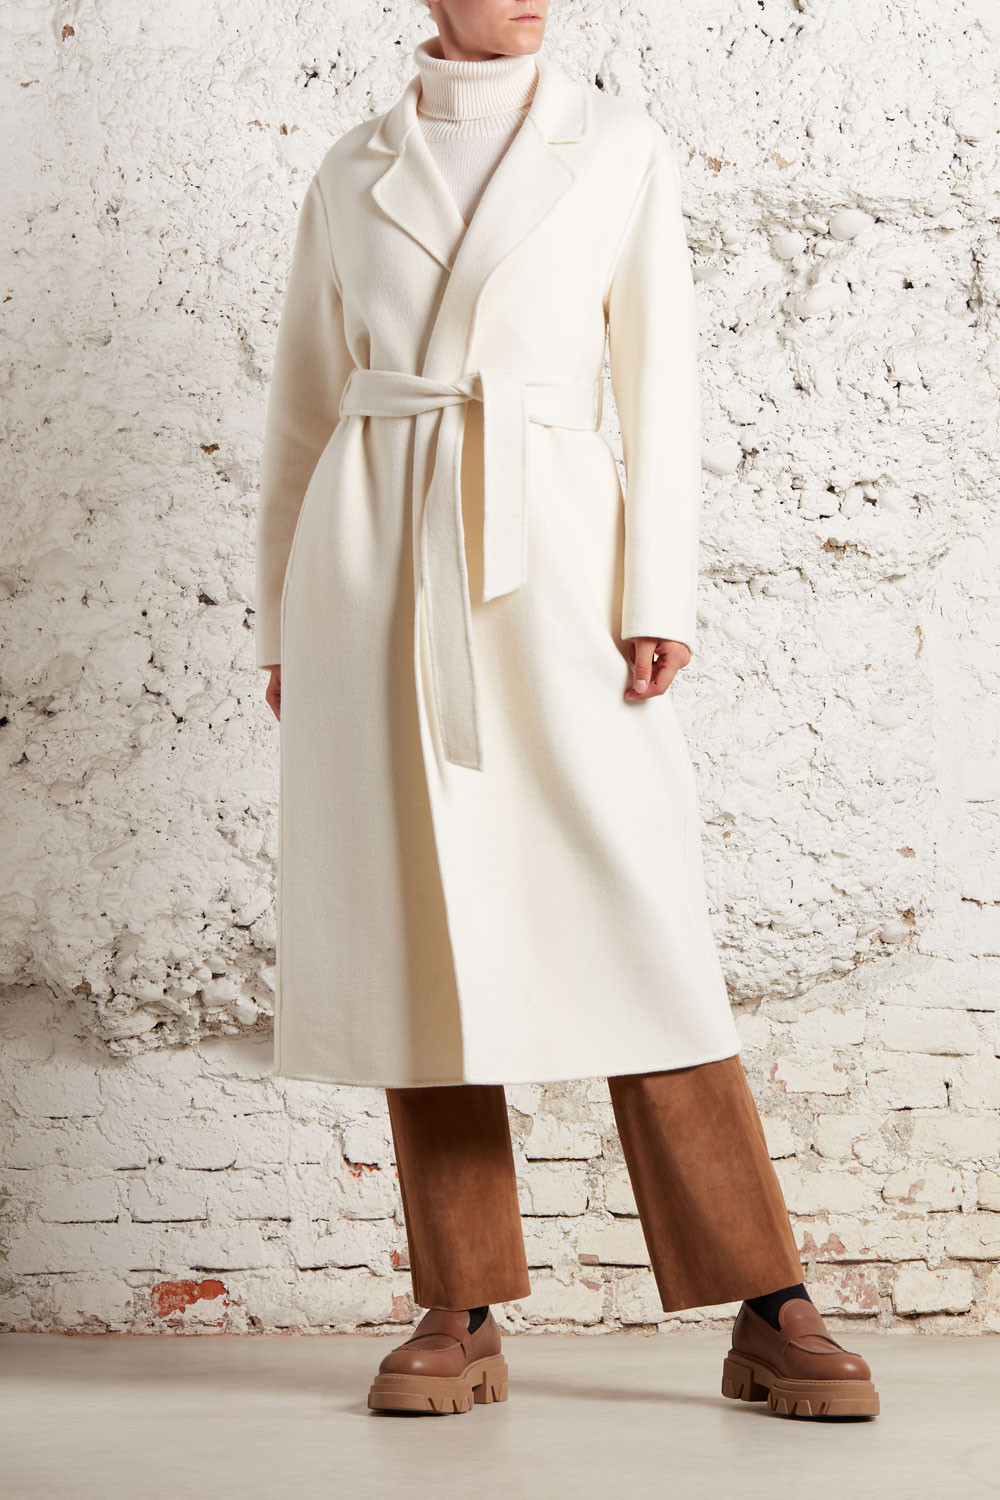 CAPPOTTO LUNGO DOUBLE - LEAKD430890